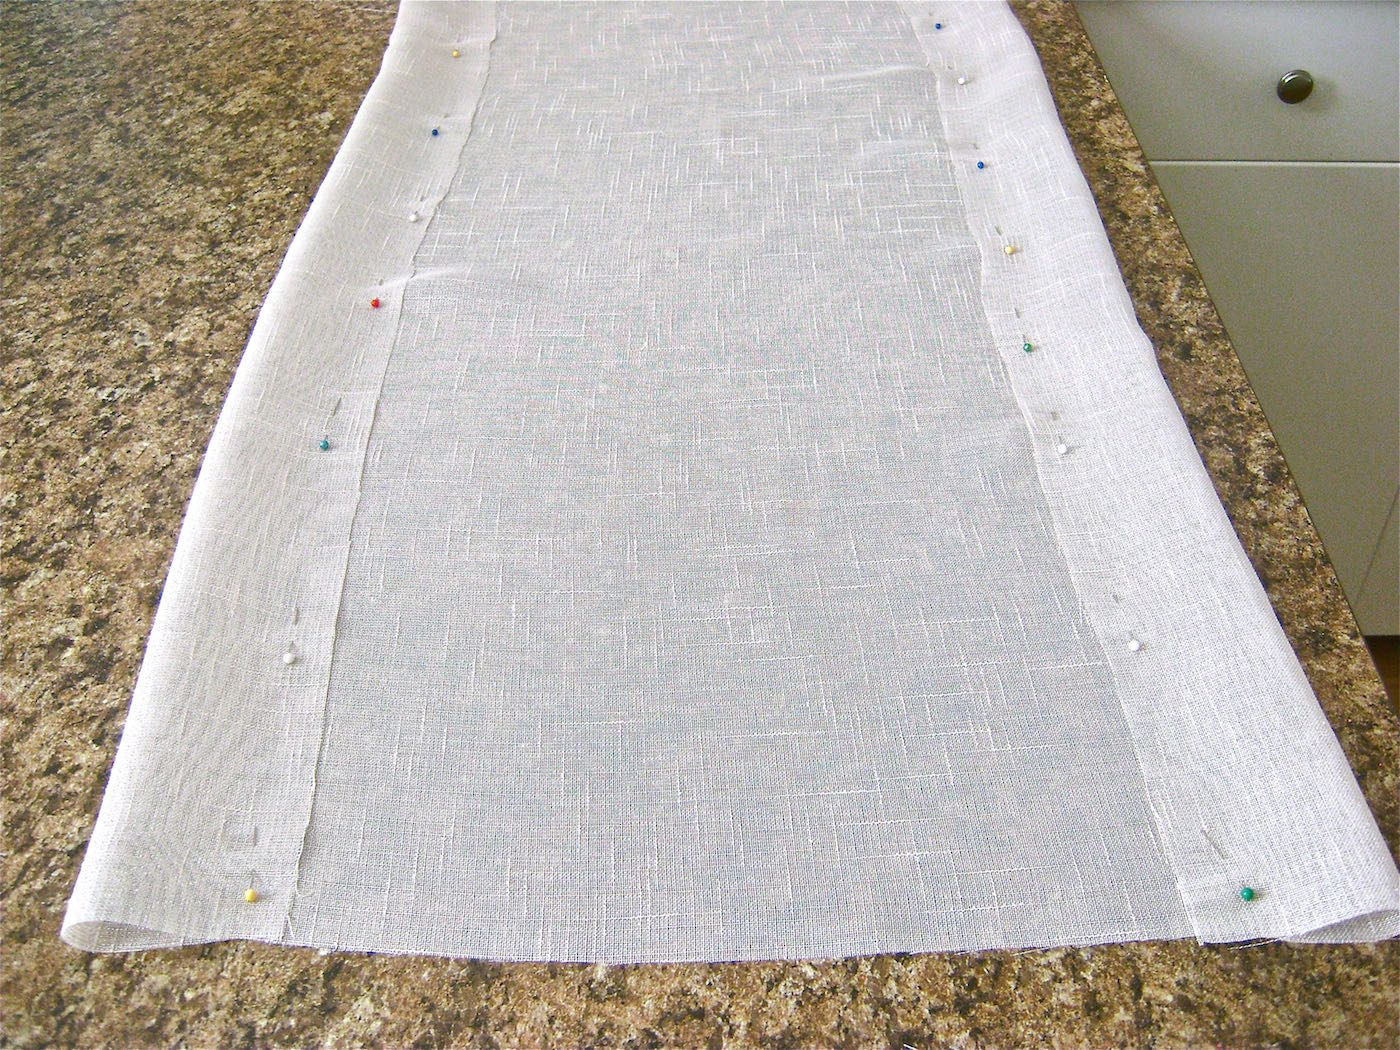 """step 1 - Cut the length and width of the runner you need for your size table. The short finished ends should drop a minimum of 4"""" down from the table edge. I made my table runner 18"""" wide so that plates on both sides of it would not overlap the fabric or design. For an 18"""" runner, start with raw fabric cut to 24"""" wide. Fold and pin three-inch hems along each side."""